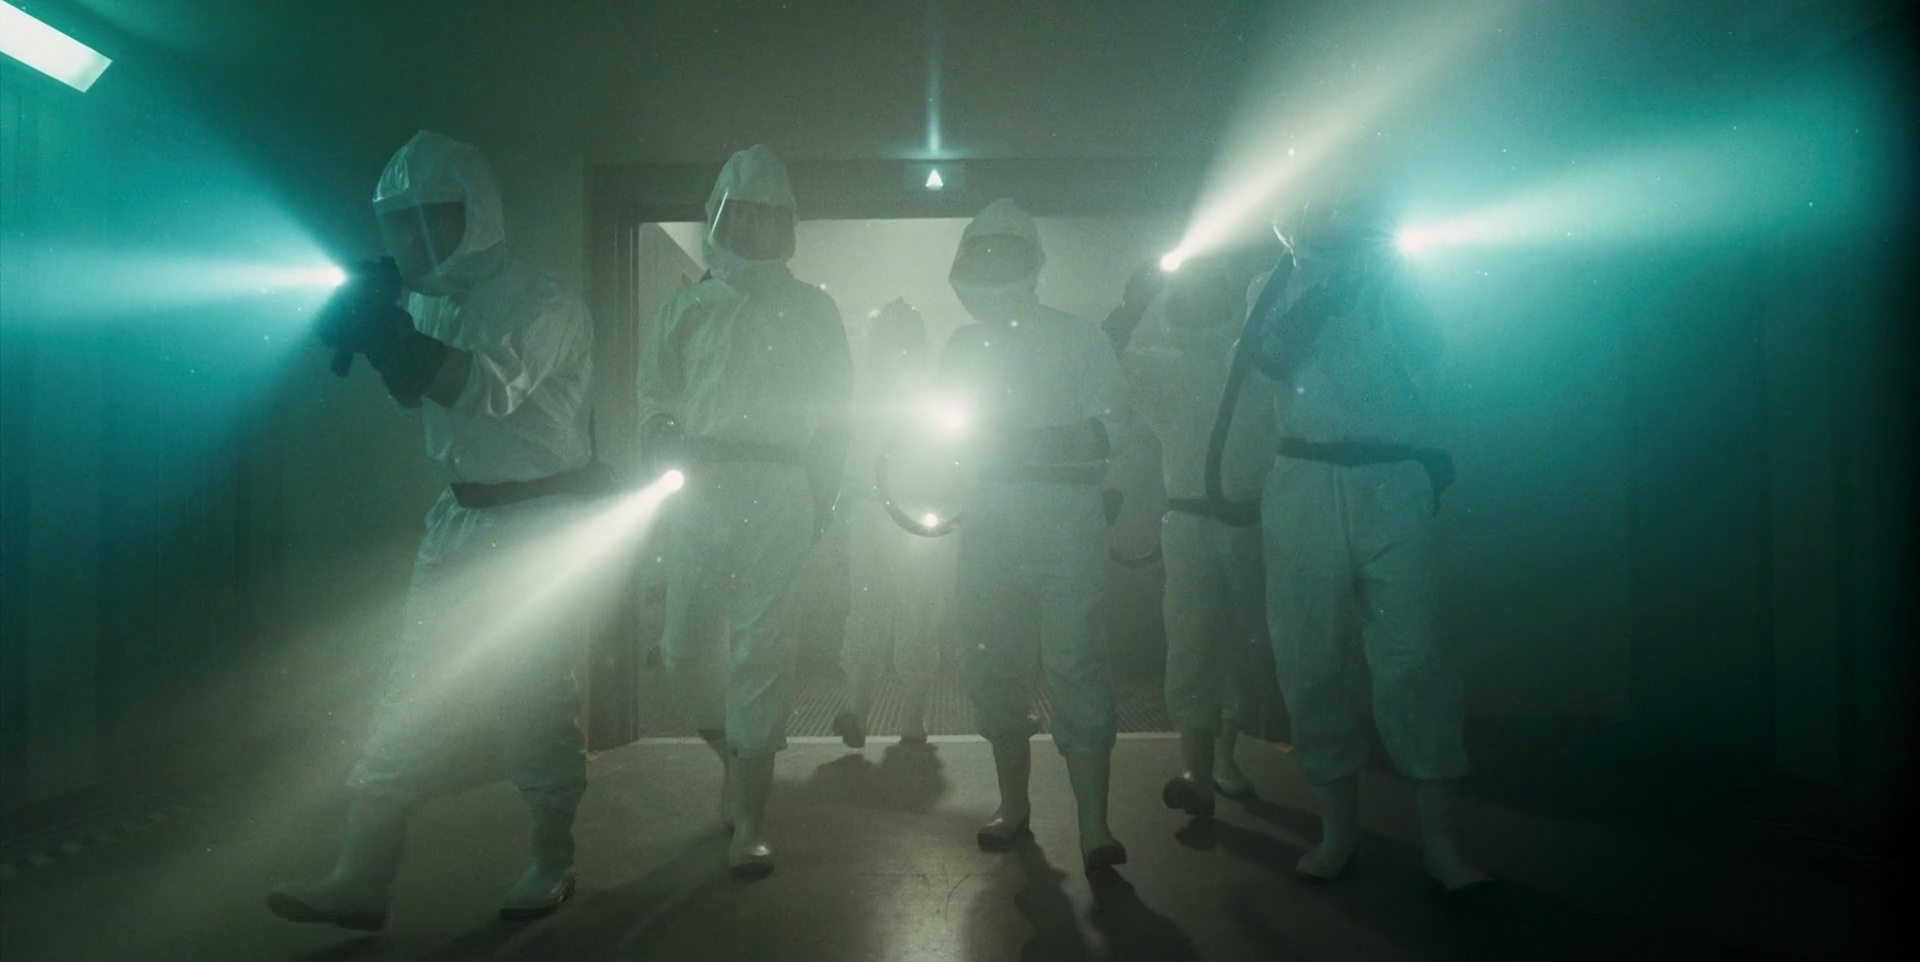 Scientists from the U.S. Department of Energy in STRANGER THINGS (2016)